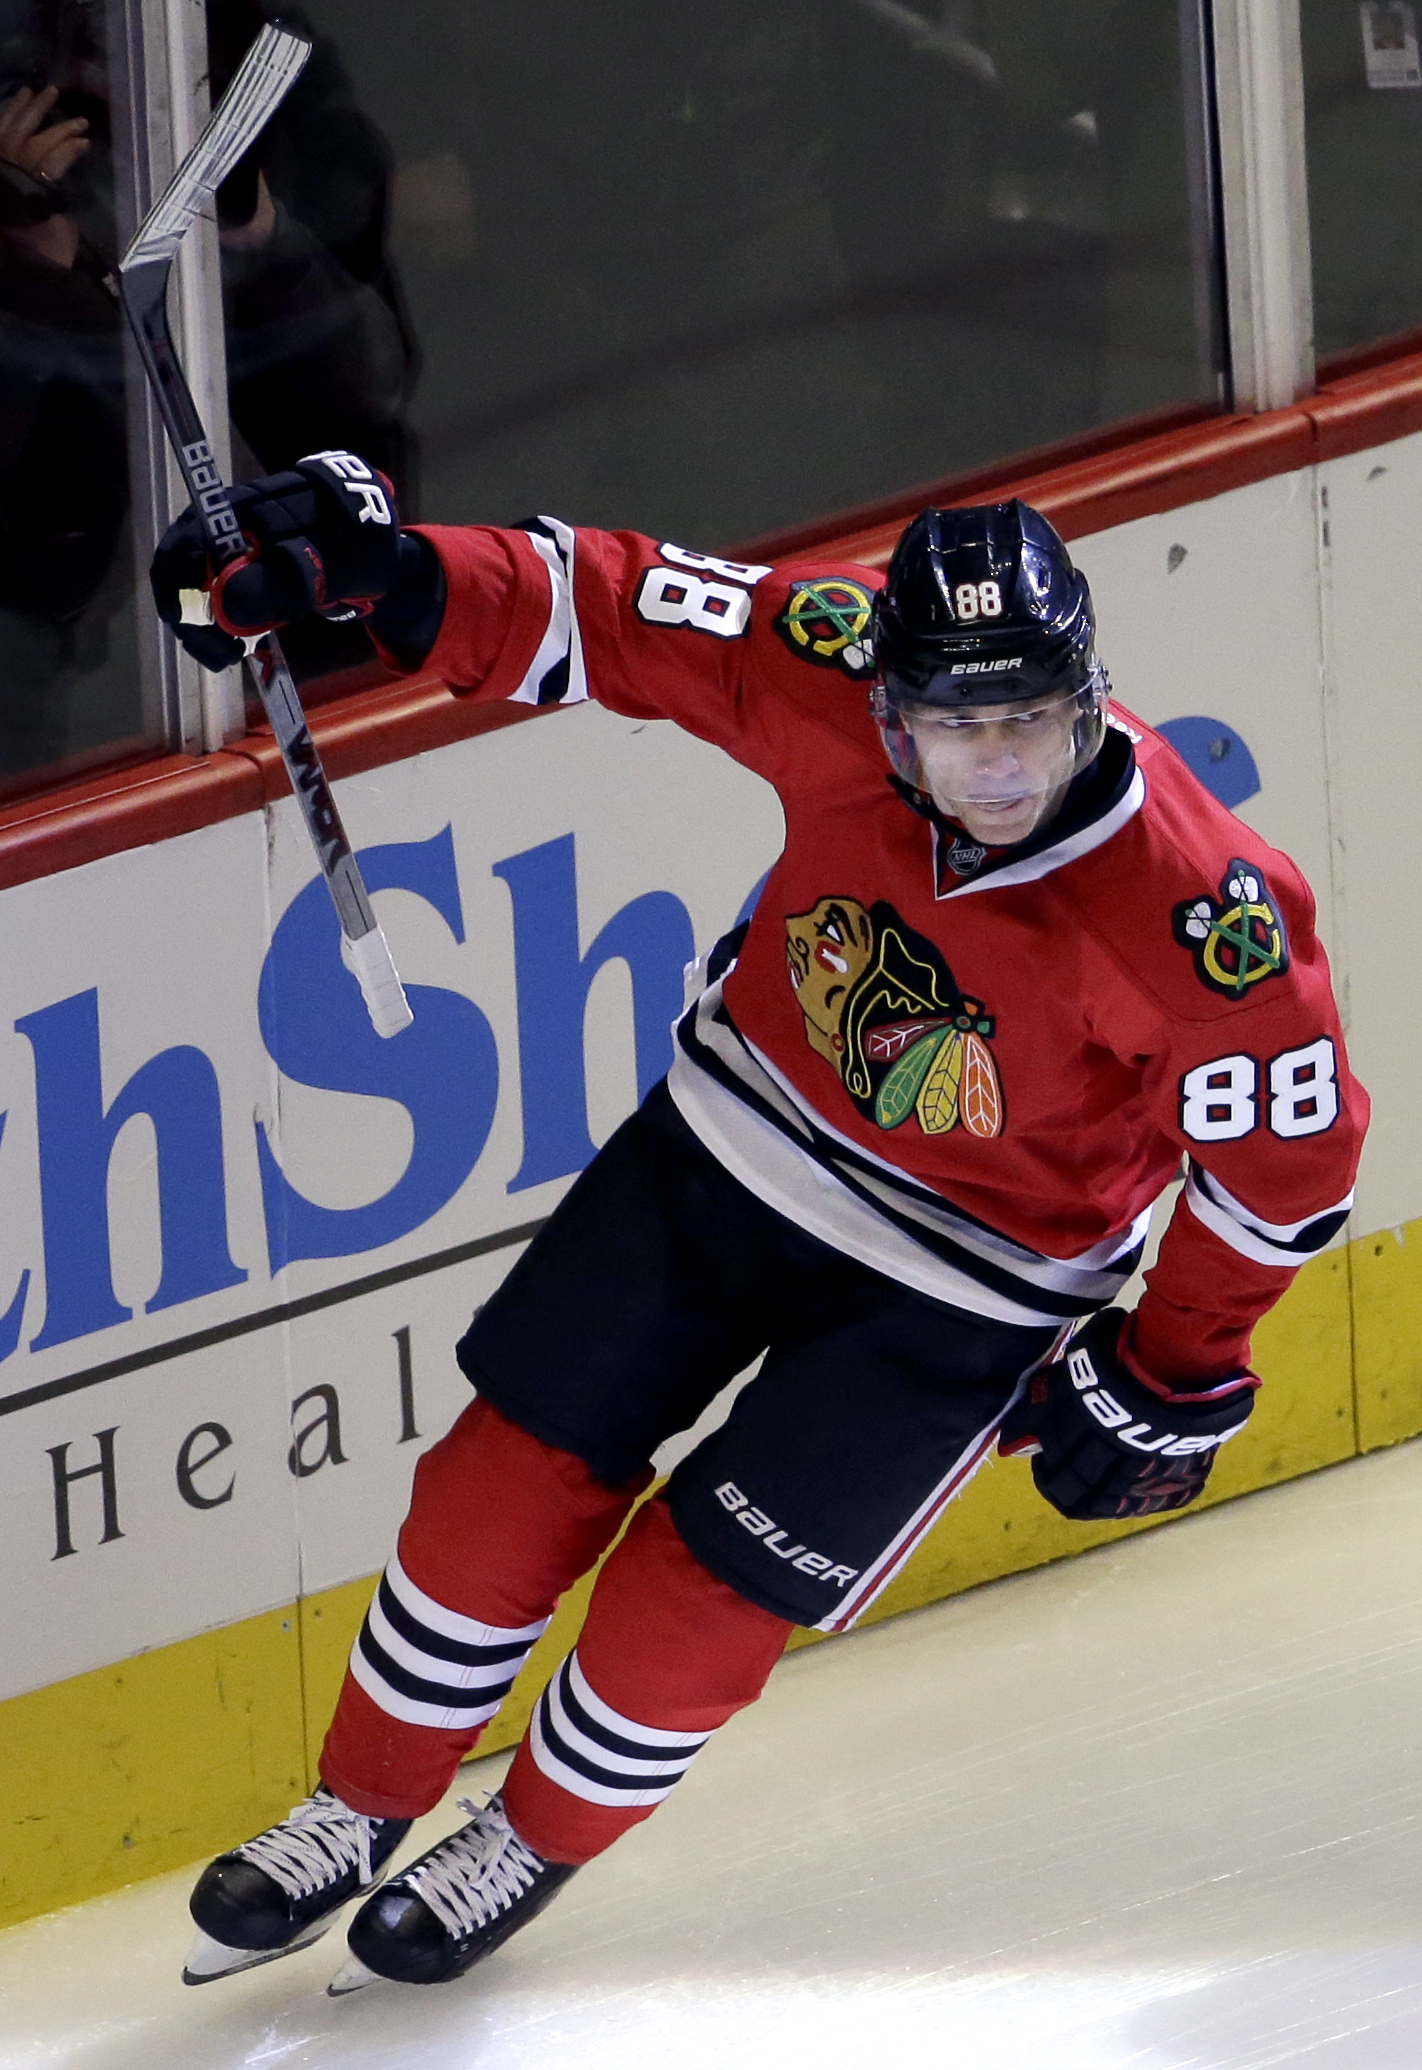 Chicago Blackhawks right wing Patrick Kane celebrates after scoring his goal during the first period of an NHL hockey game against the Detroit Red Wings Sunday, March 6, 2016, in Chicago. (AP Photo/Nam Y. Huh)